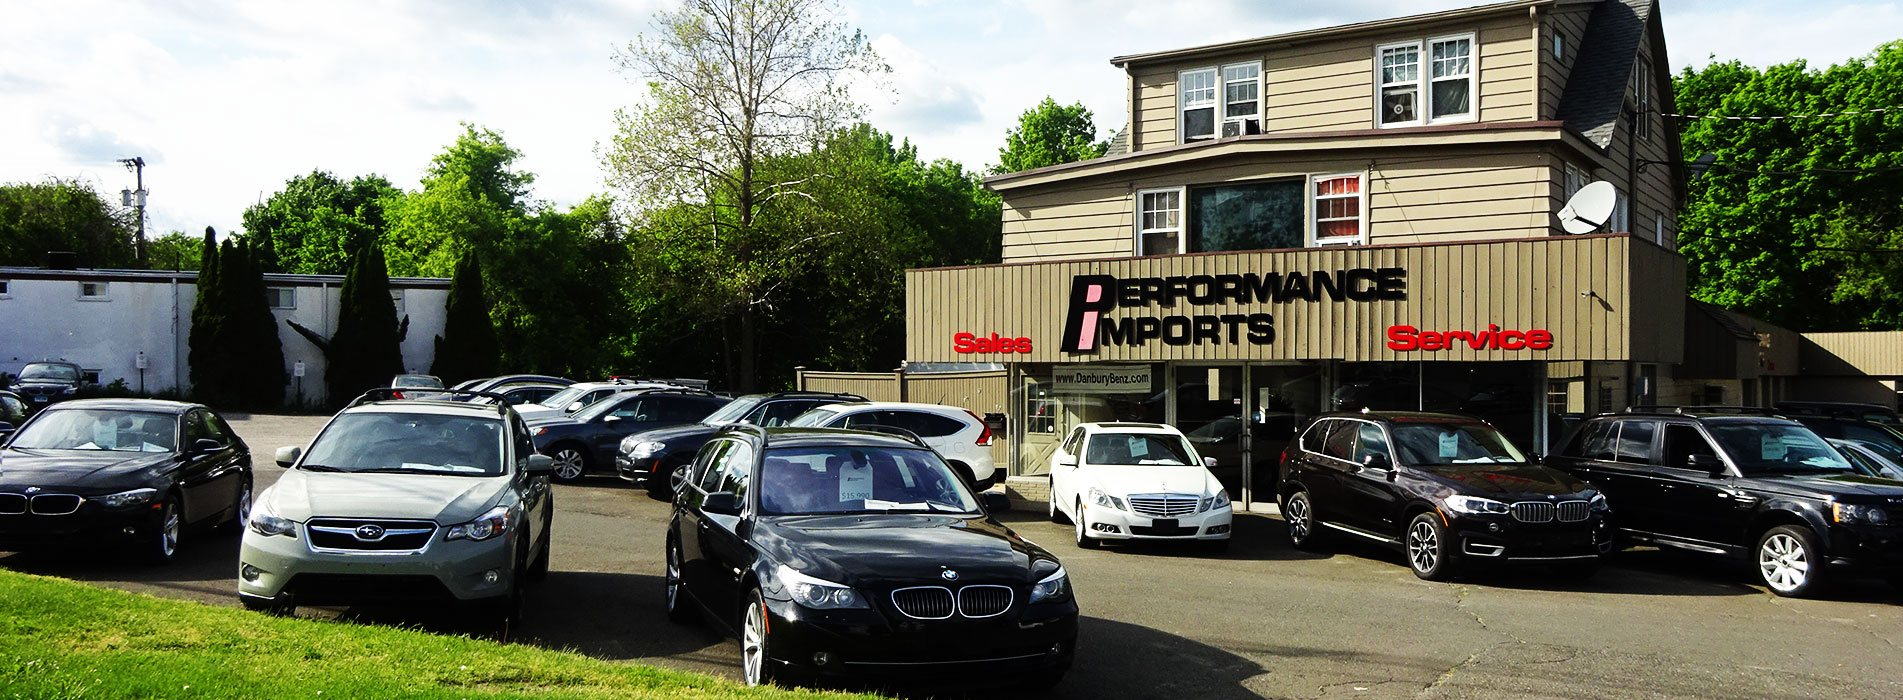 Auto Repair & Restoration, Auto Body Repair, Used Car Sales: Danbury, CT